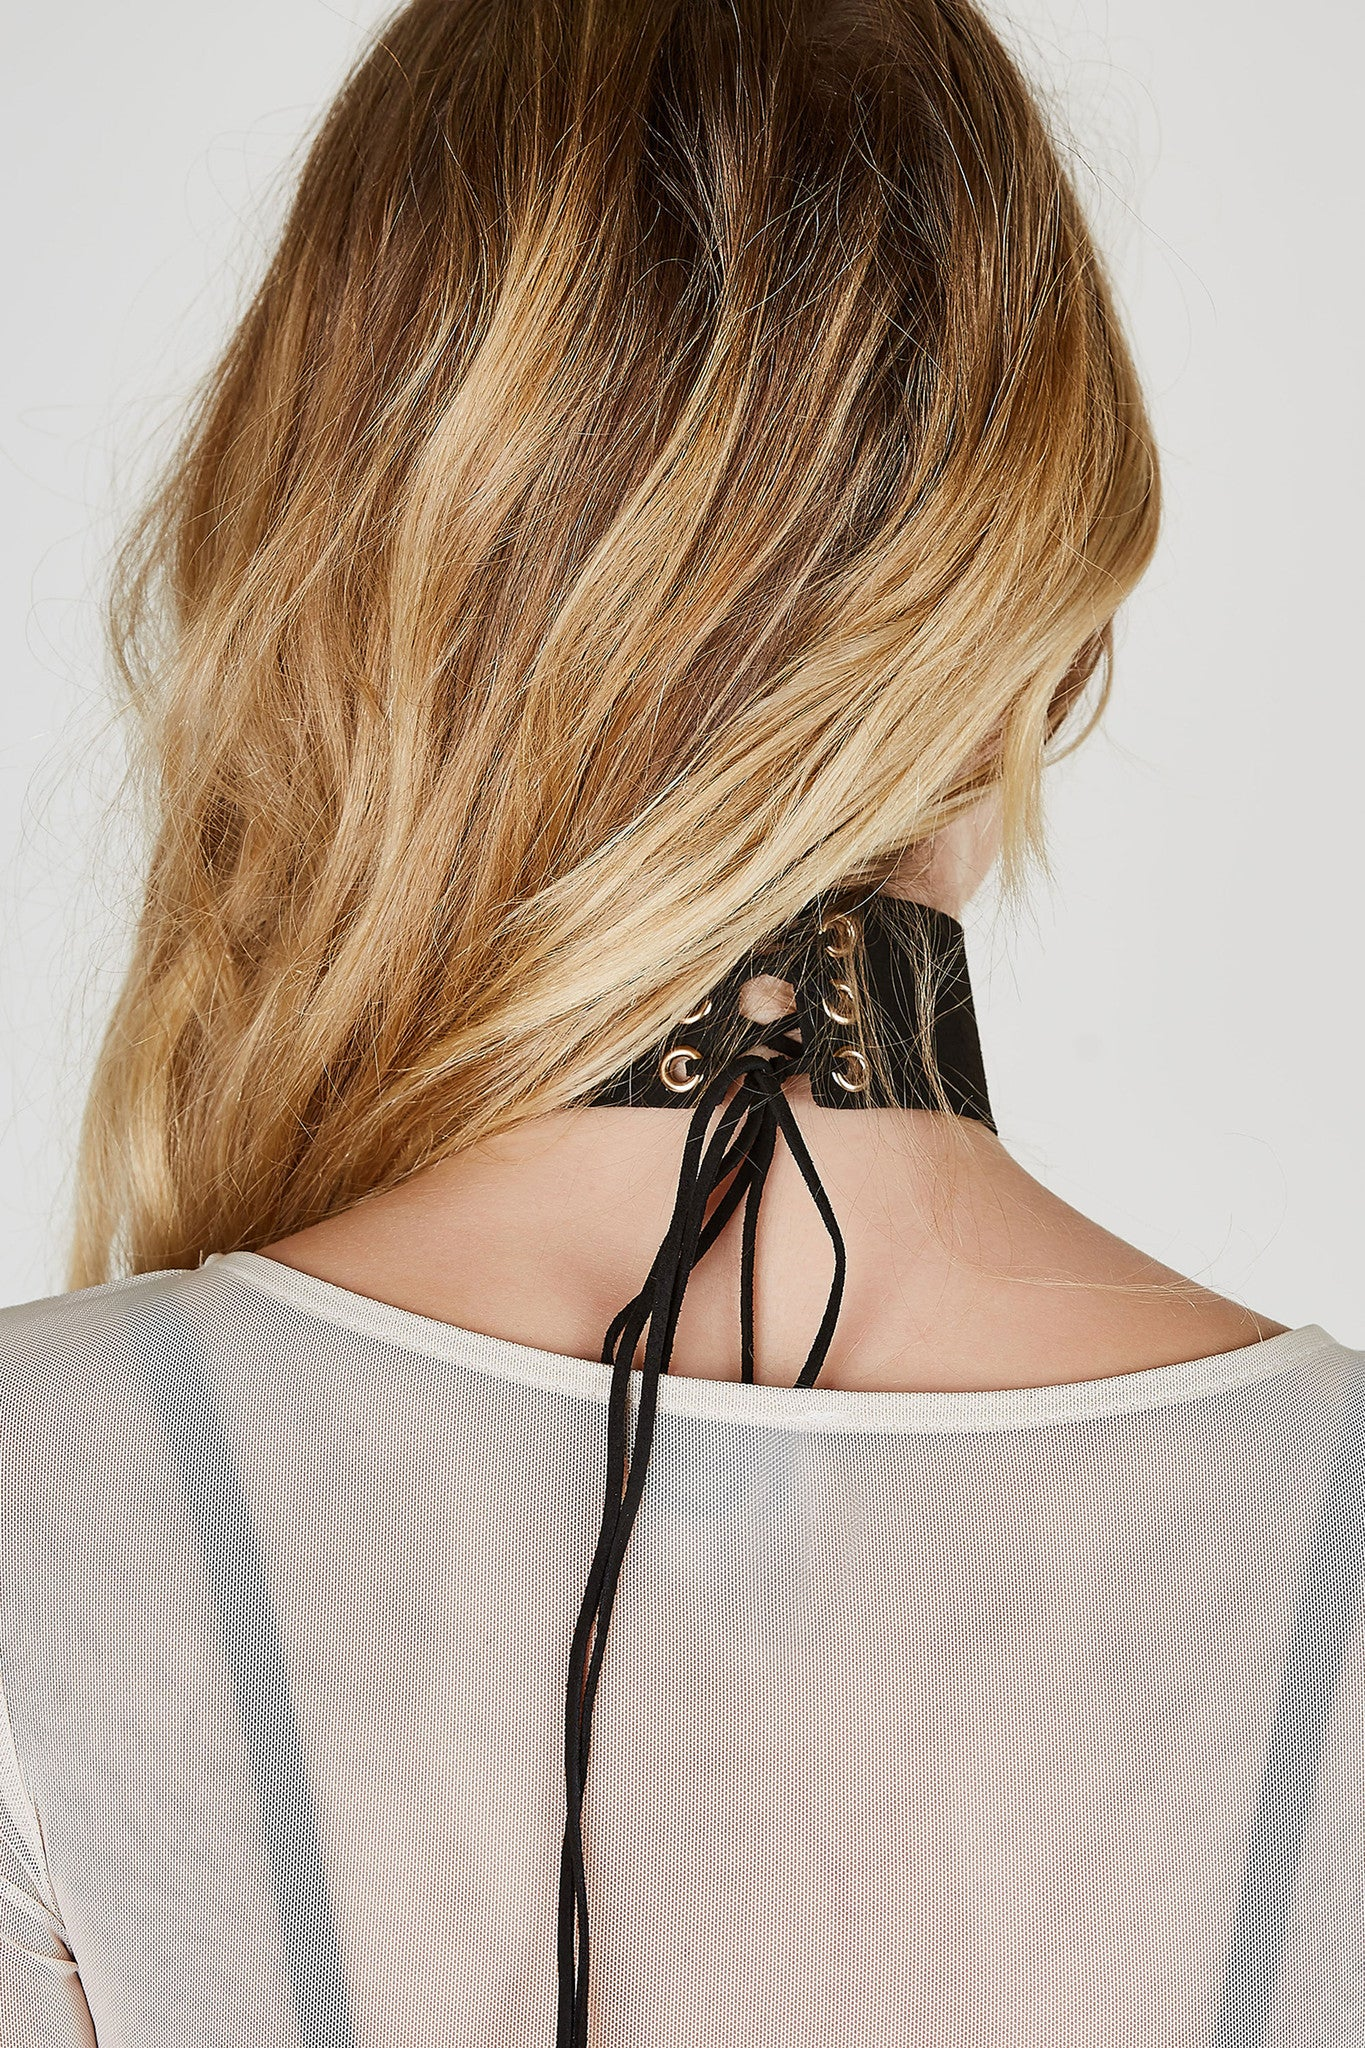 Take your basic outfit to the next level by adding this awesome choker to your look! Wide band design detailing a trendy lace up closure at center for fit and closure.